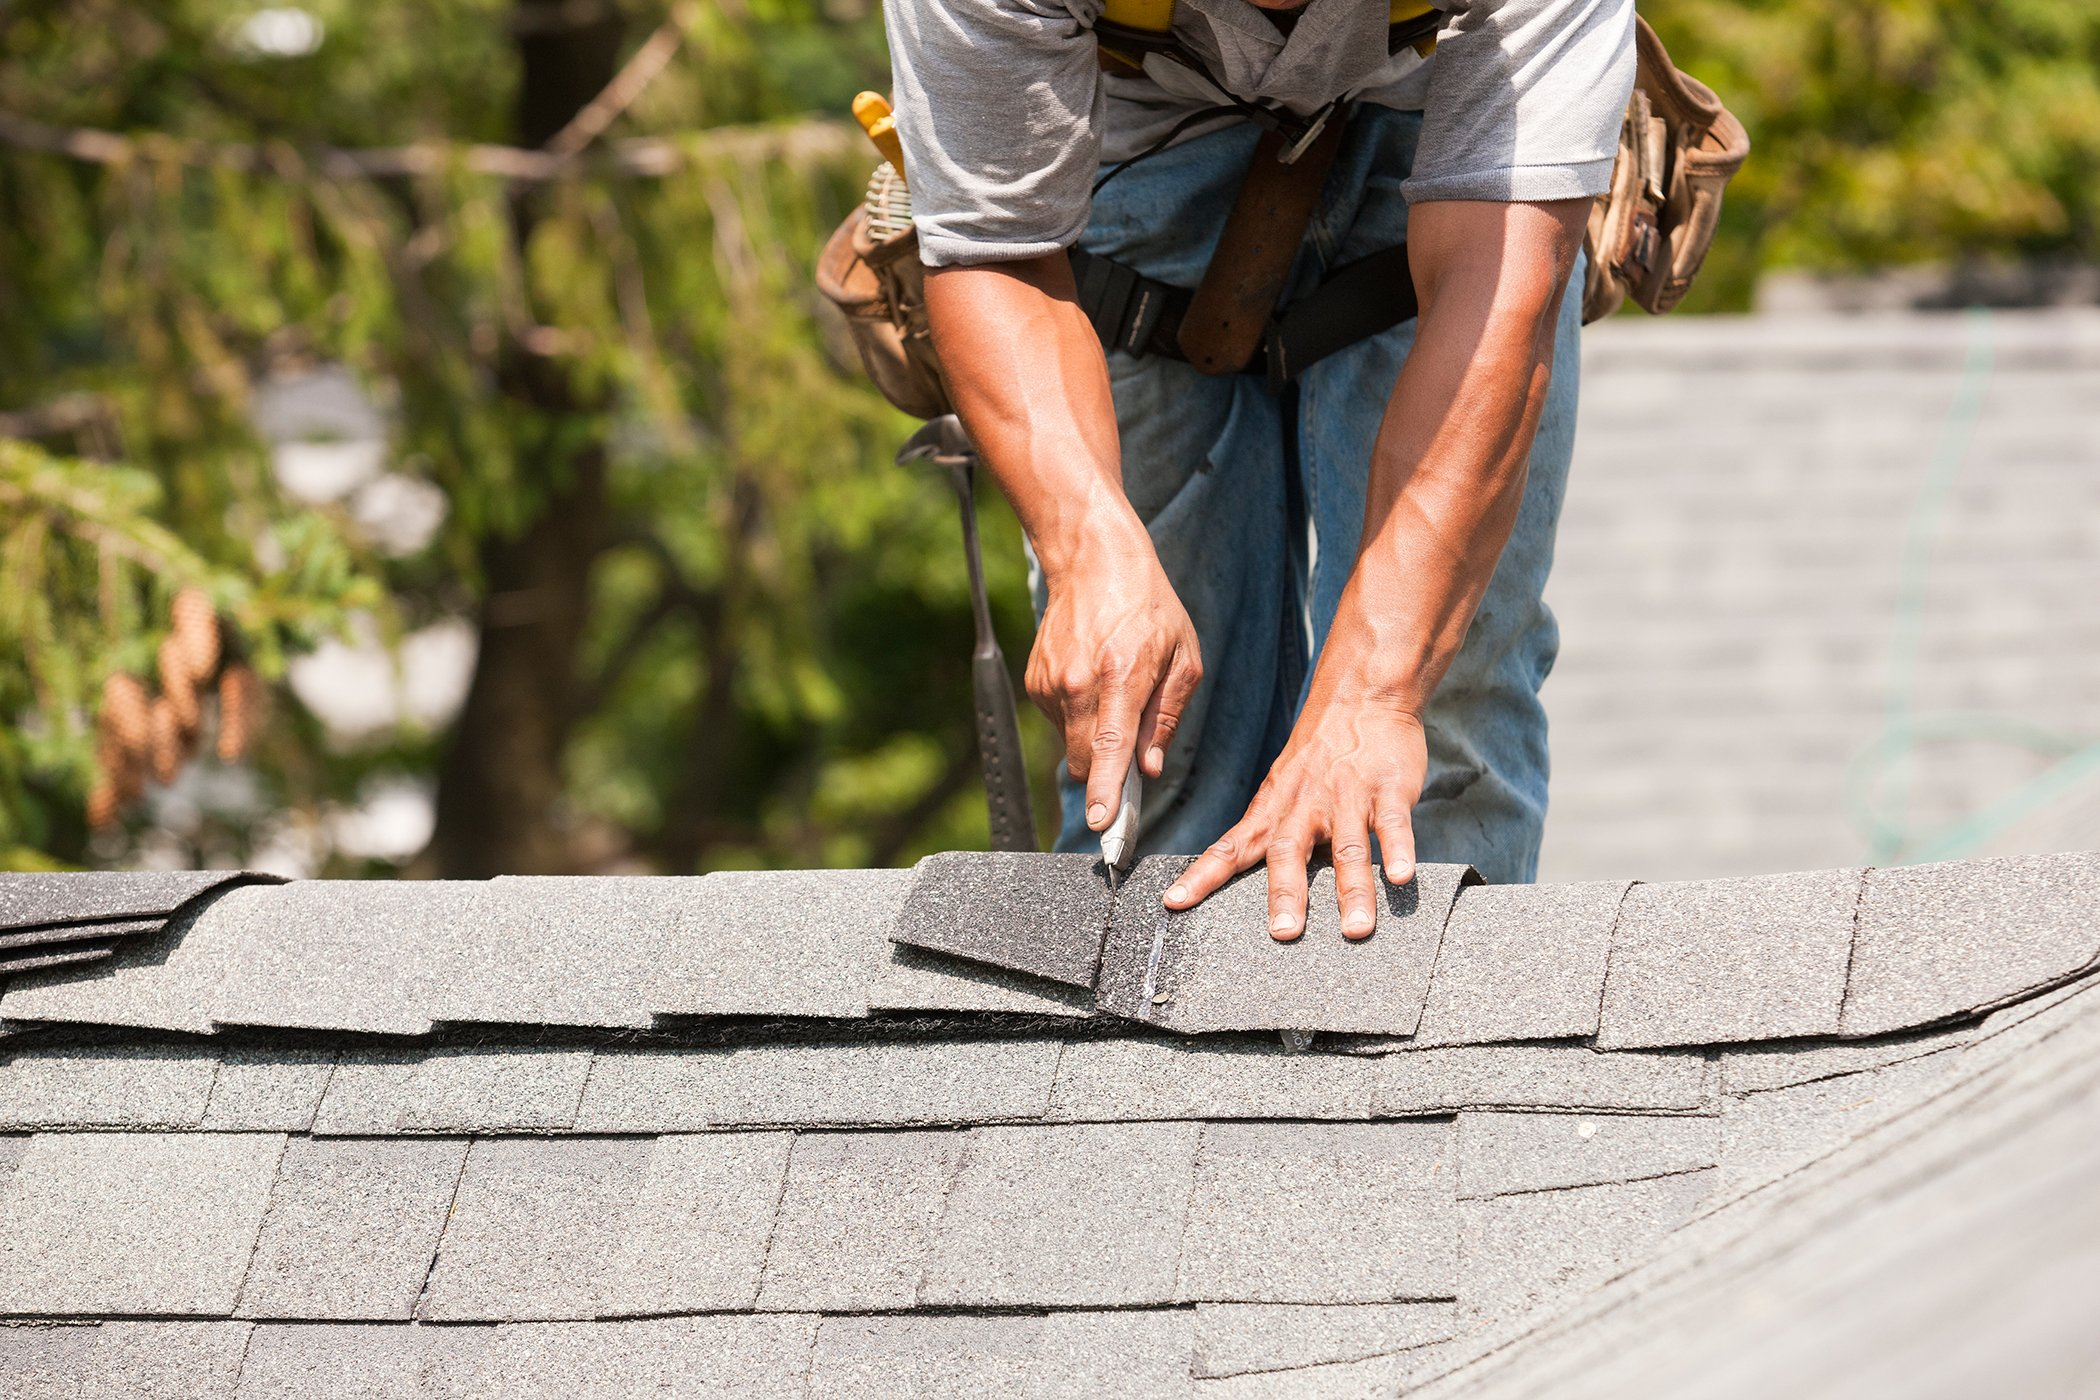 Residential Steel Roofing Saint charles, MO 63303